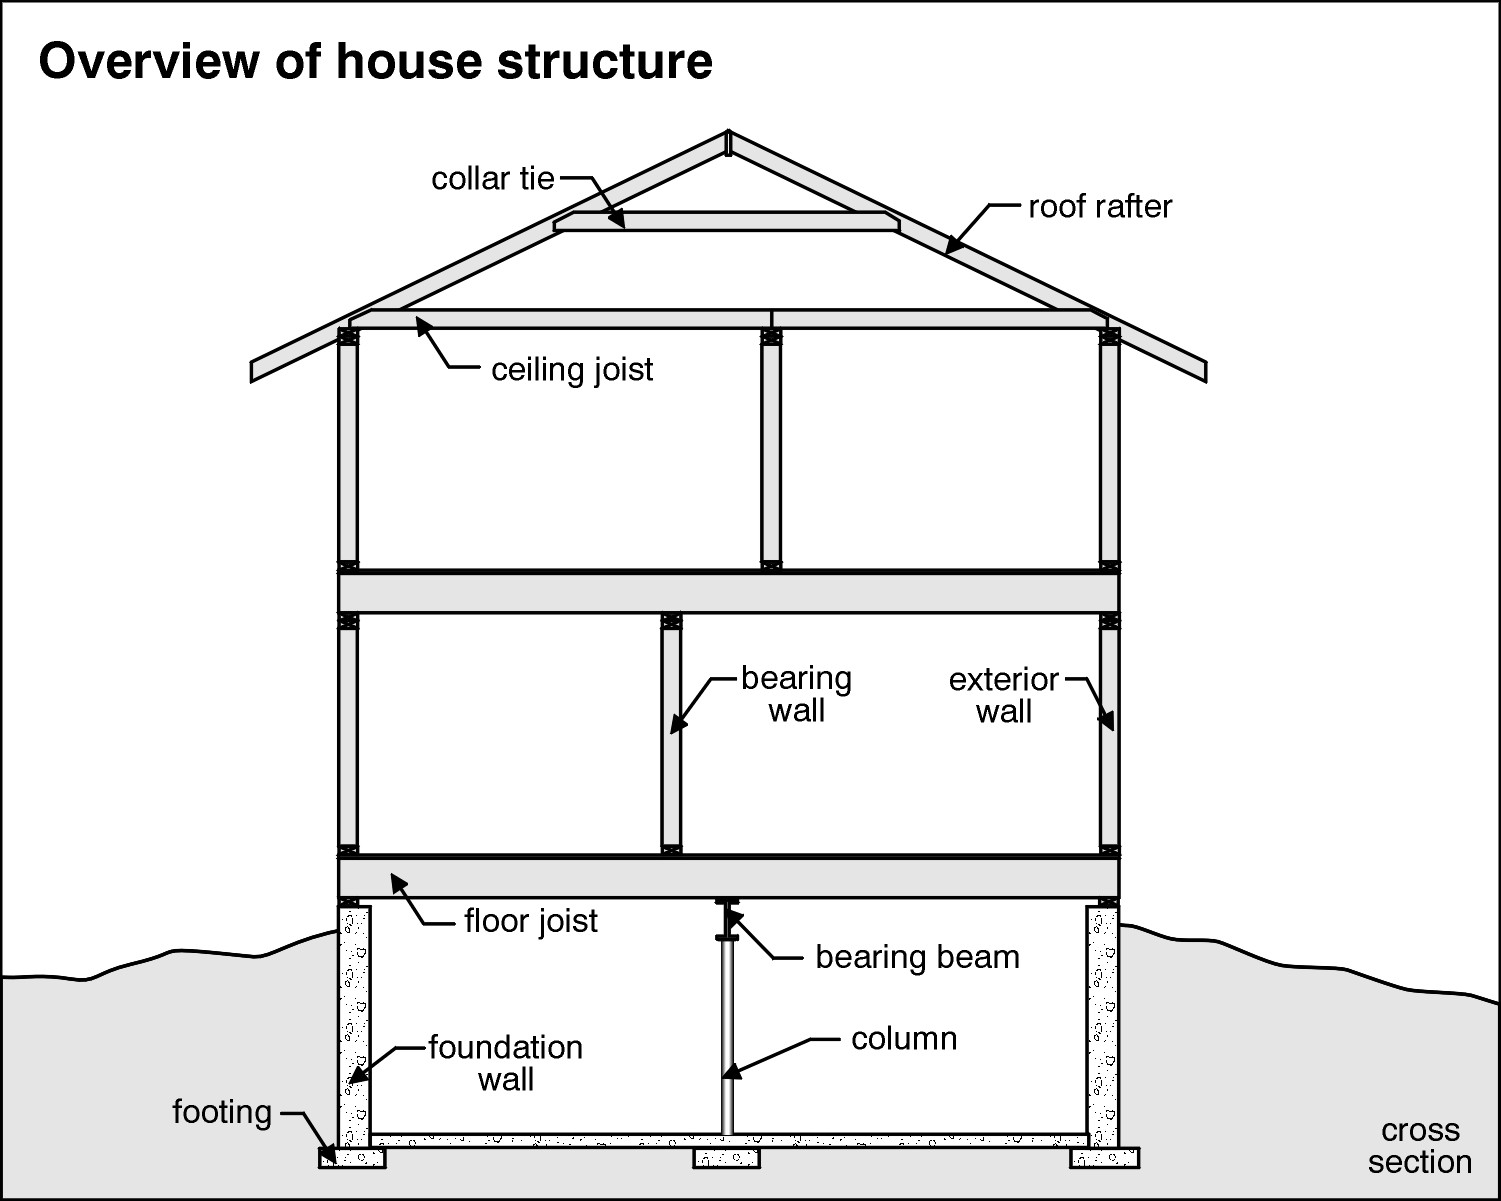 New home construction phase inspections a pro home inspection this phase of the inspection is done which involves inspecting the electrical plumbing heat and framing we usually perform this inspection one to three publicscrutiny Choice Image